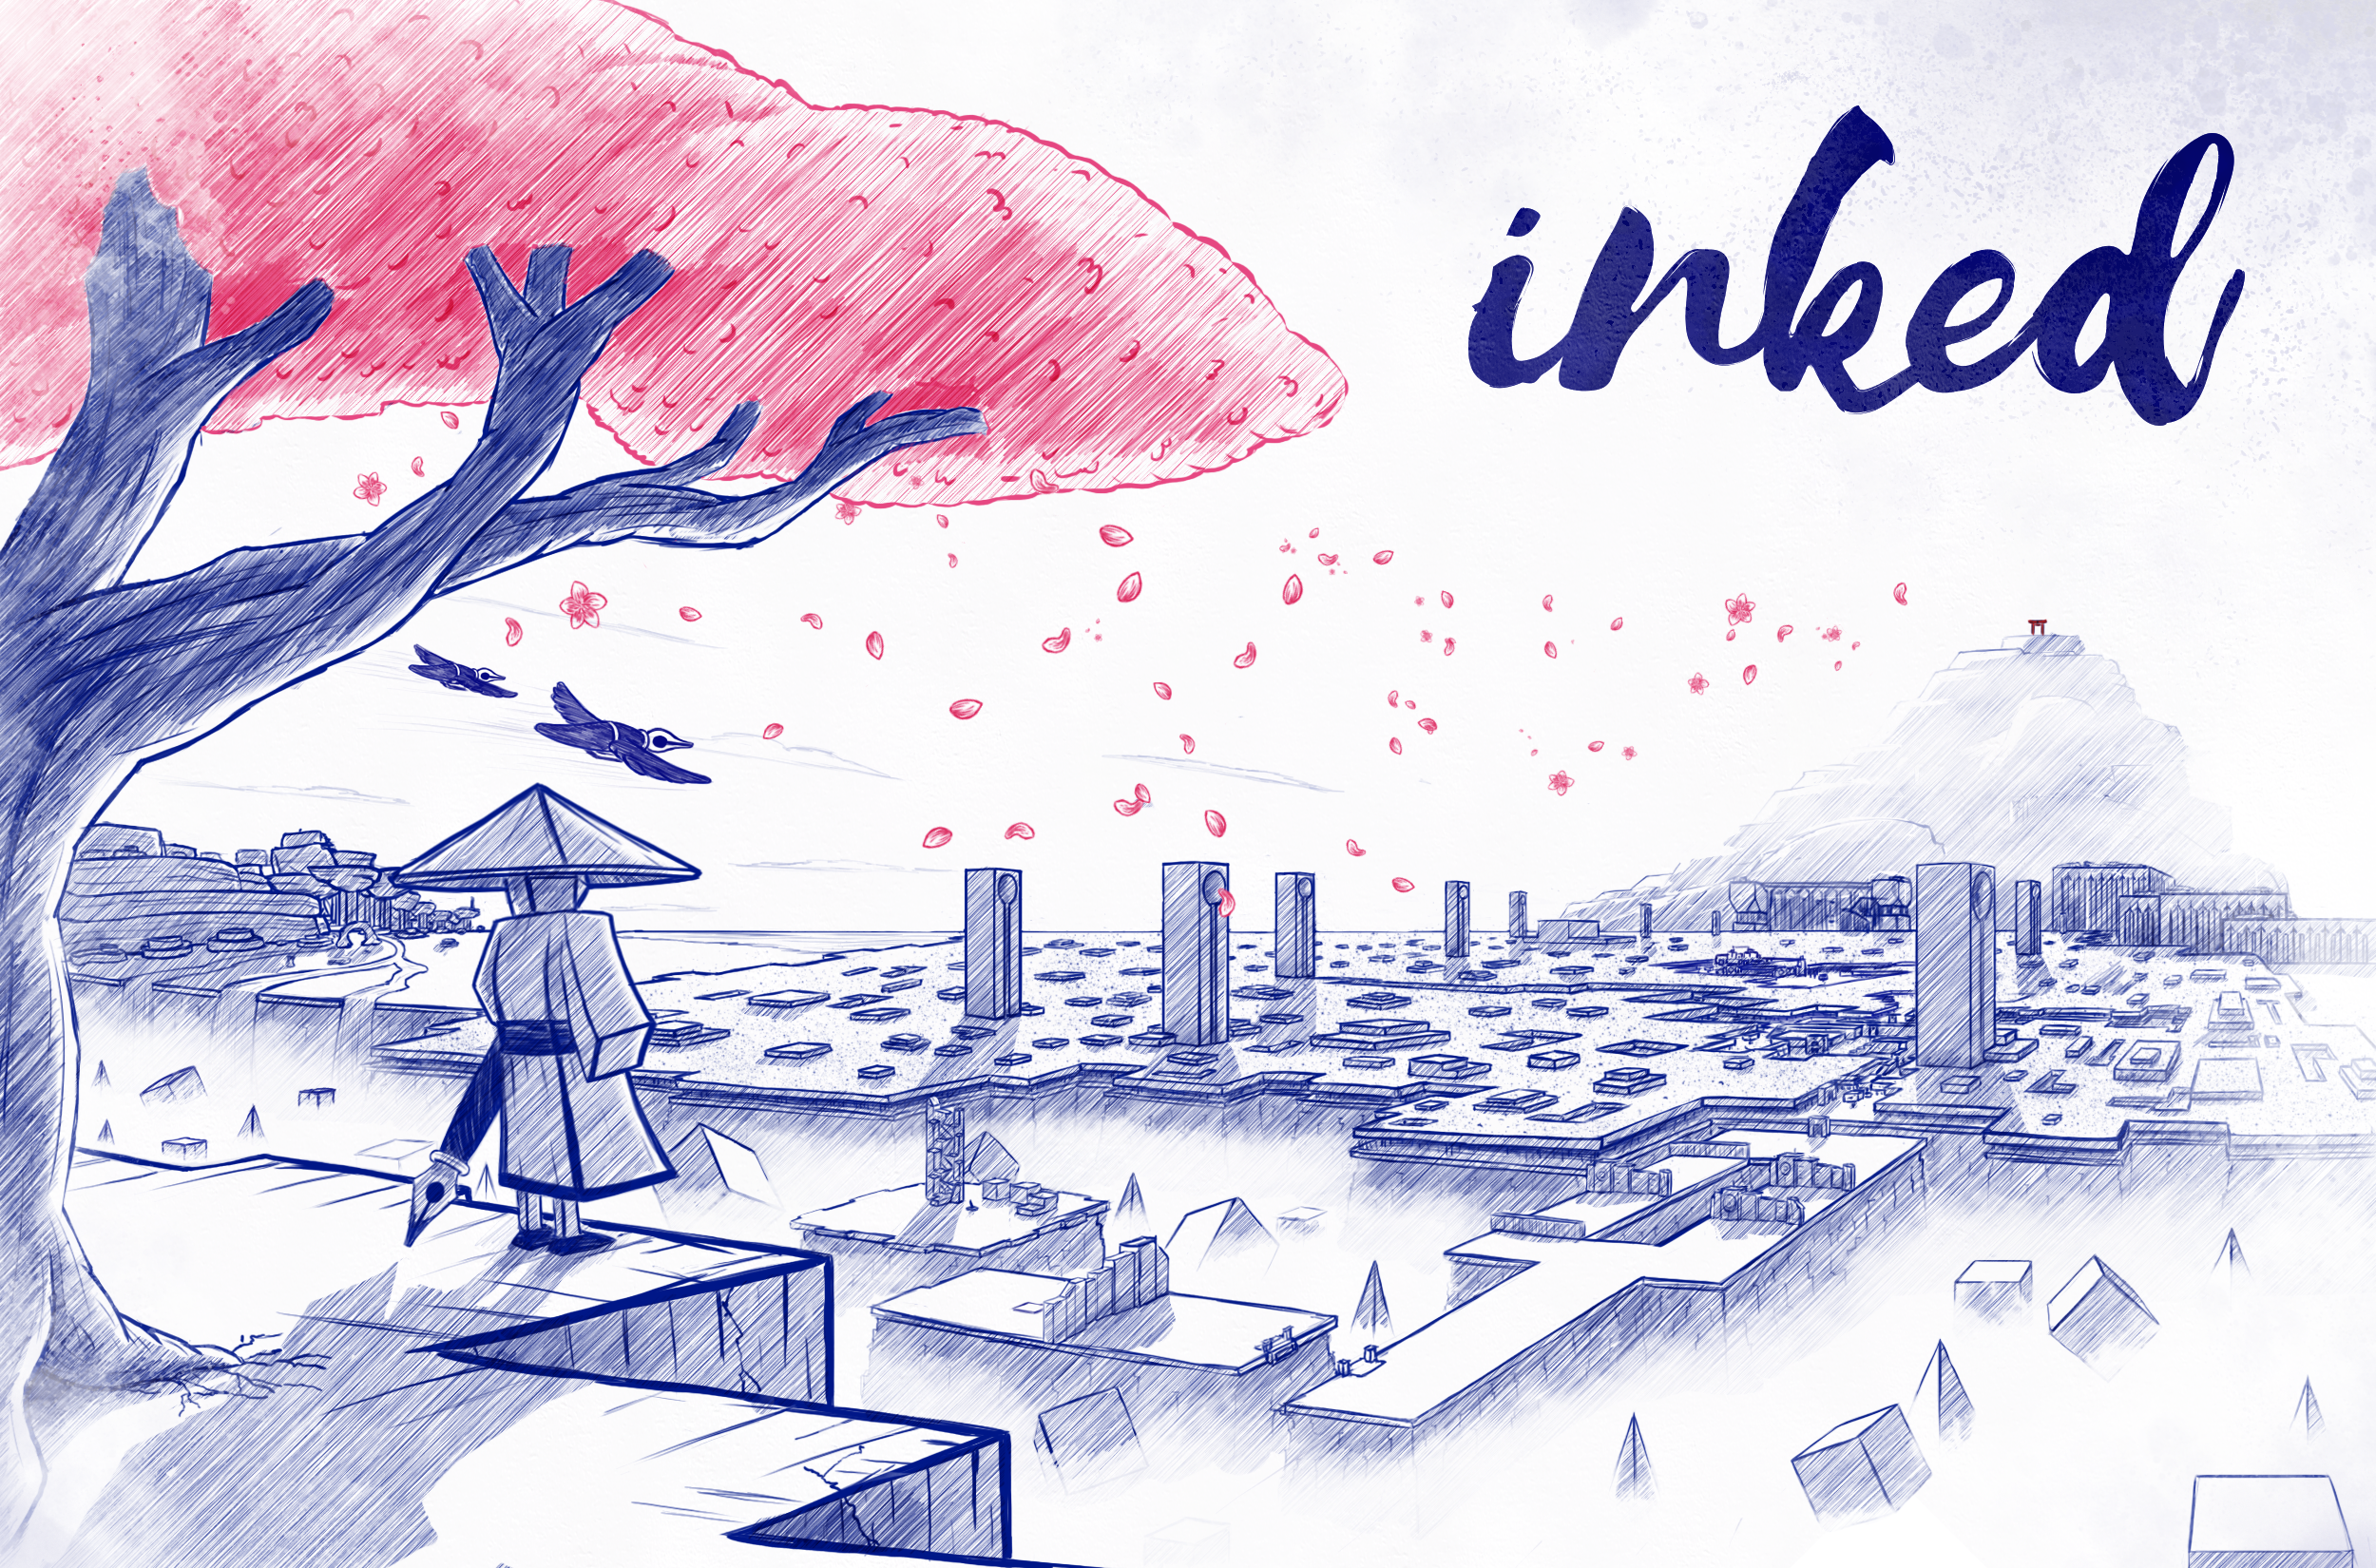 Hand-Drawn Puzzler Inked Sets Its Launch Date to Feb 24 2021